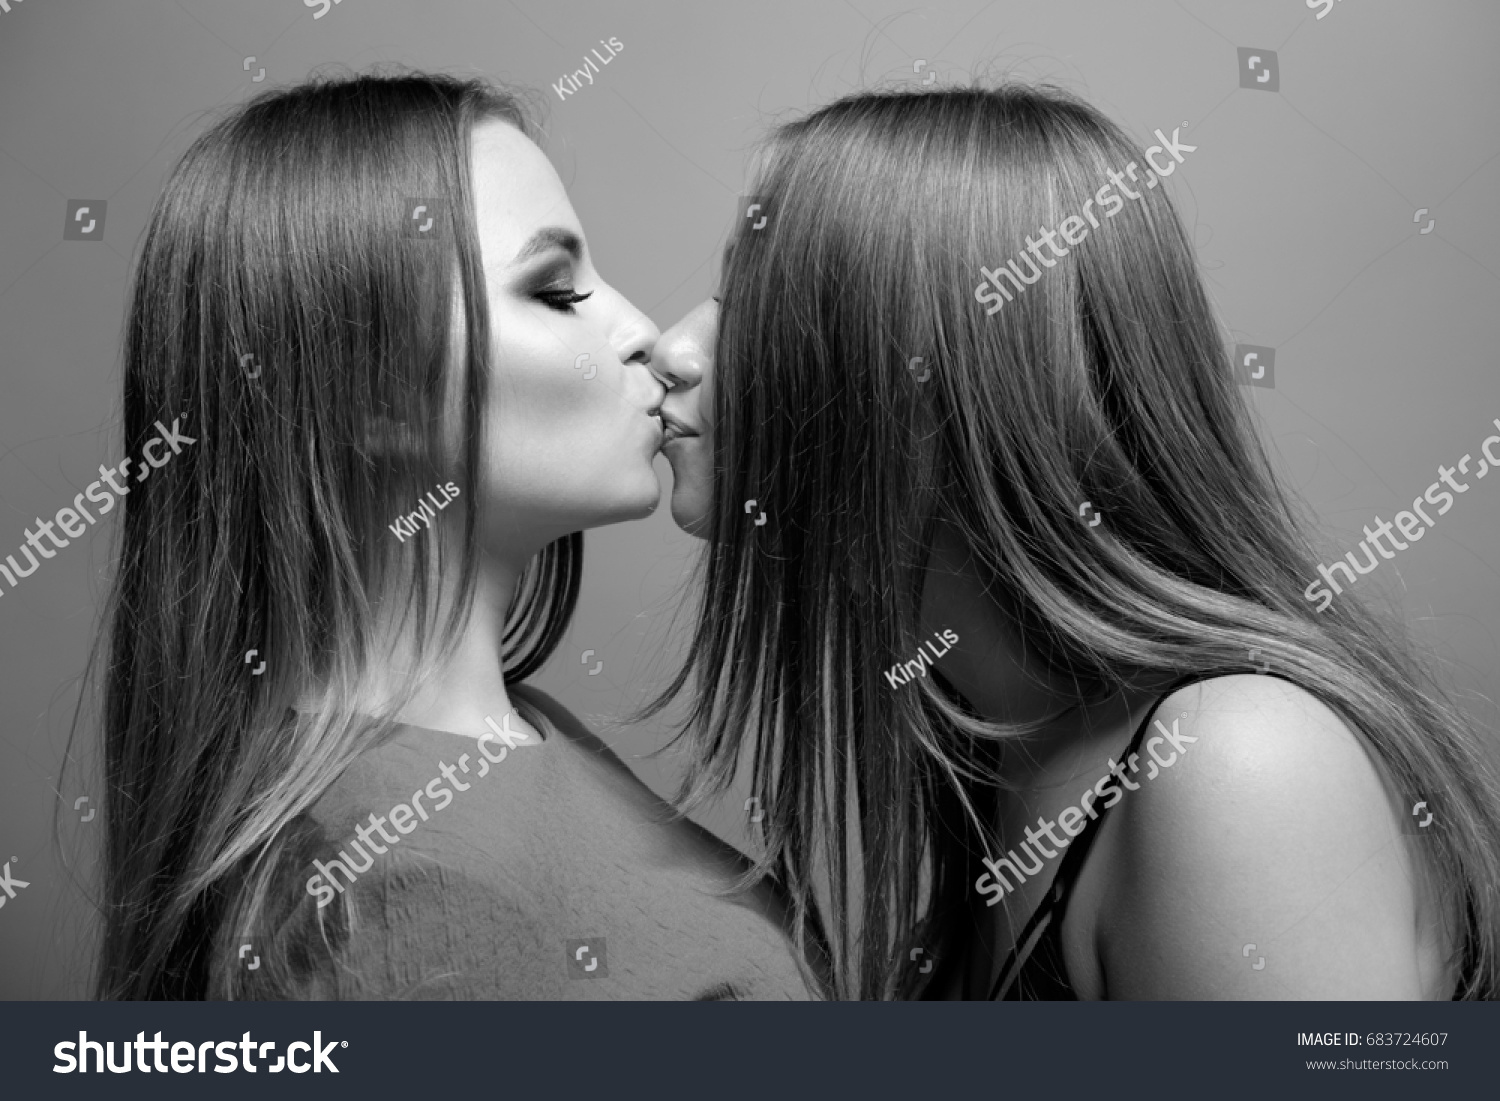 Girls Kissing Each Other